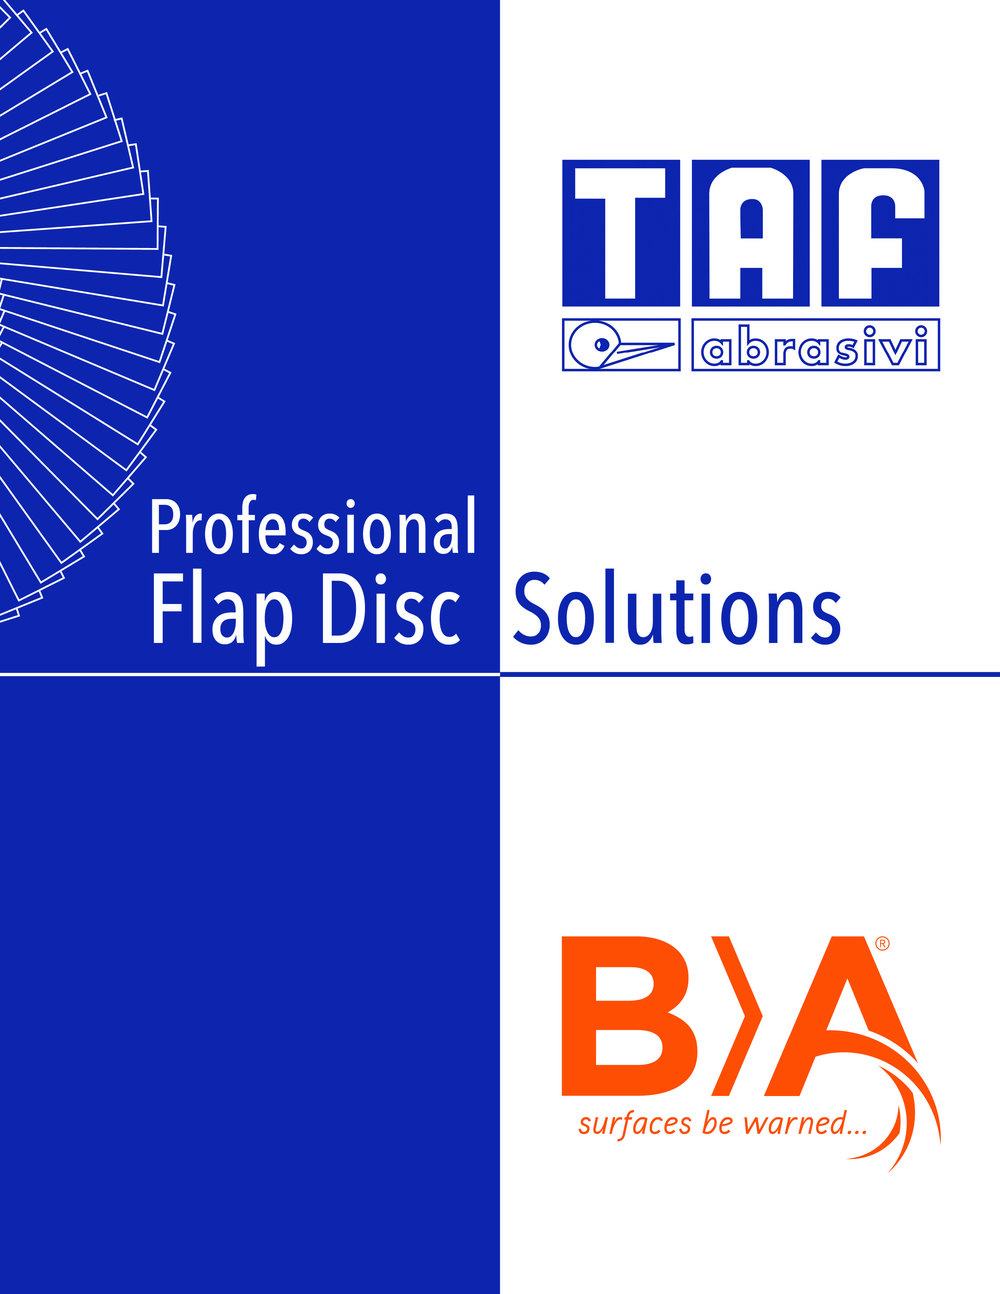 Flap disc solutions - See complete line of flap disc solutions for all grinding and finishing applications.